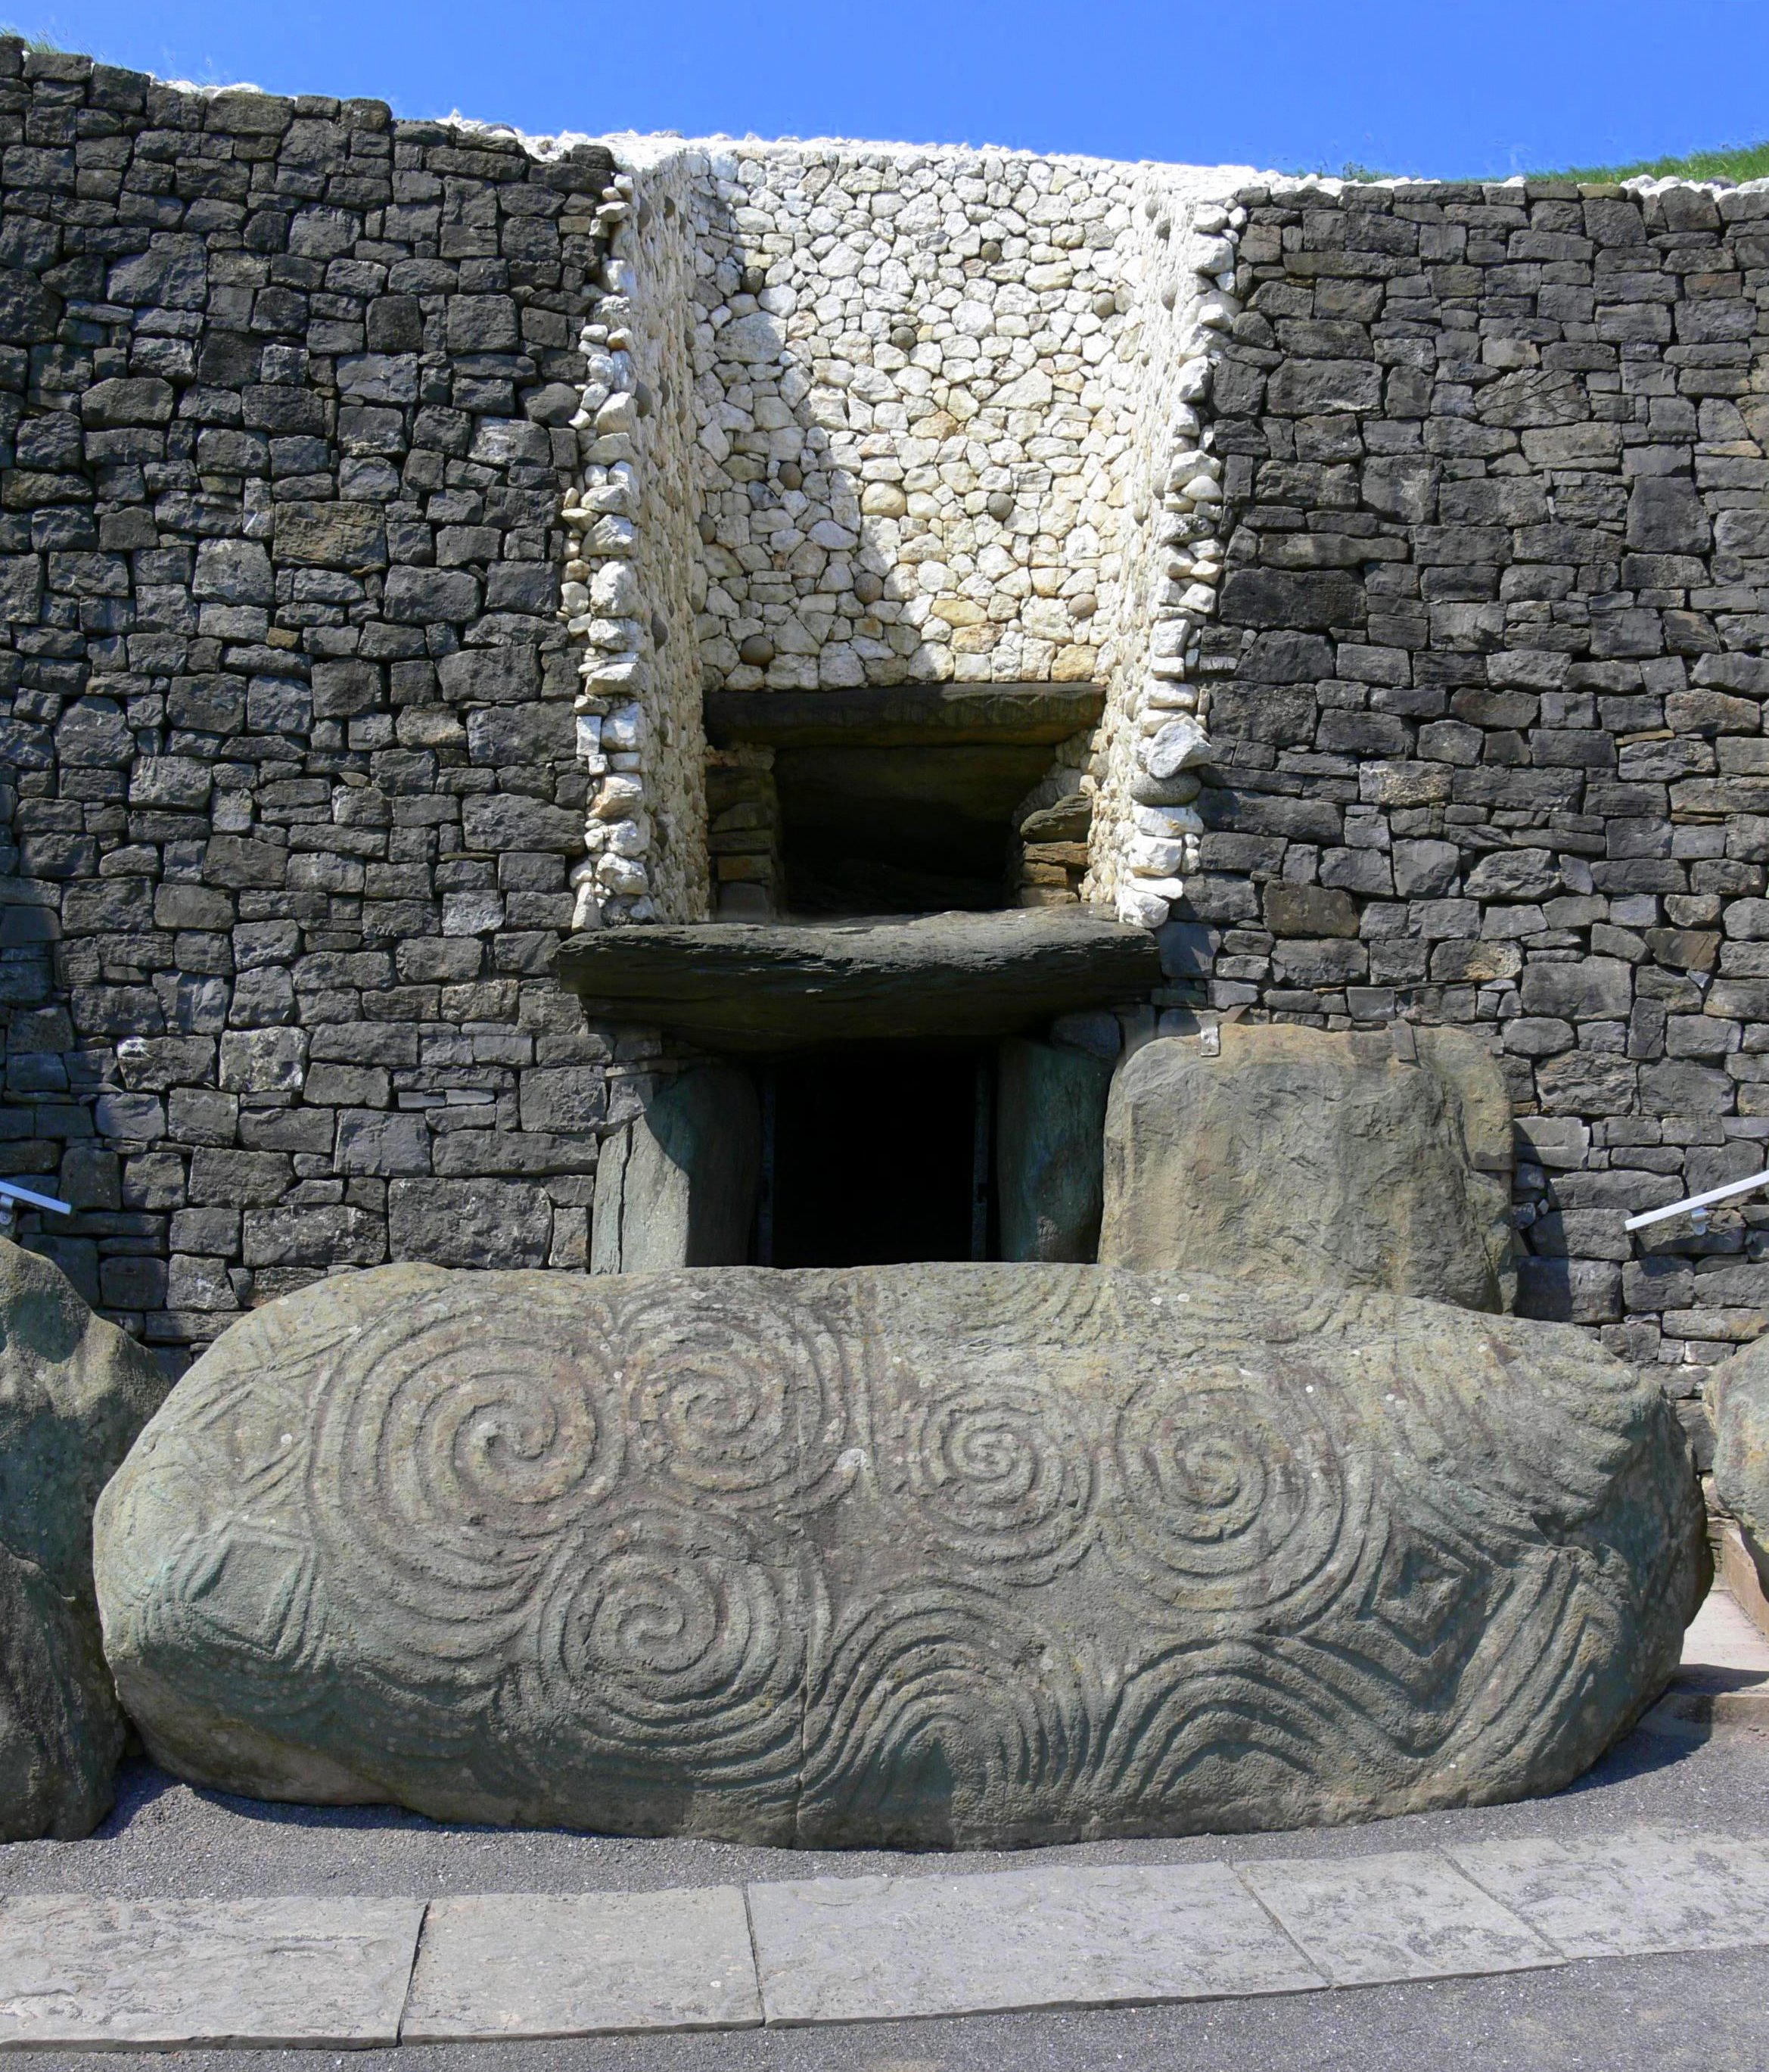 carvings at newgrange, thought to be related to the winter solstice